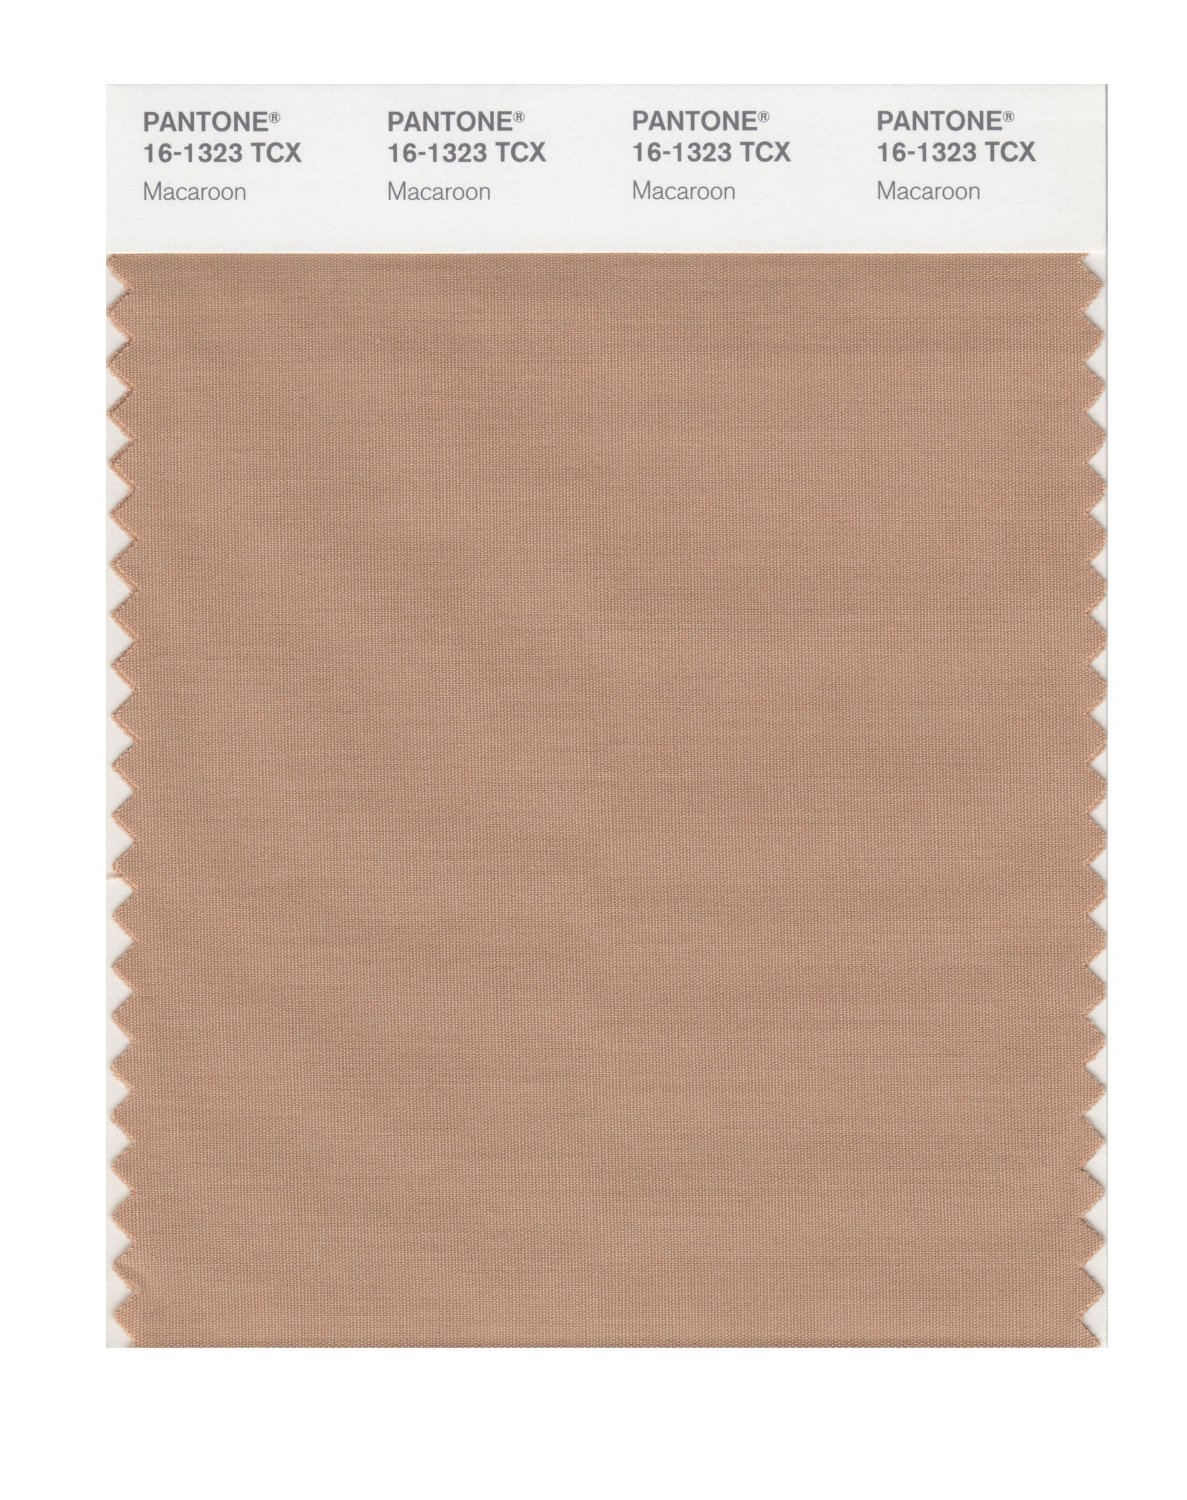 Pantone Smart Swatch 16-1323 Macaroon